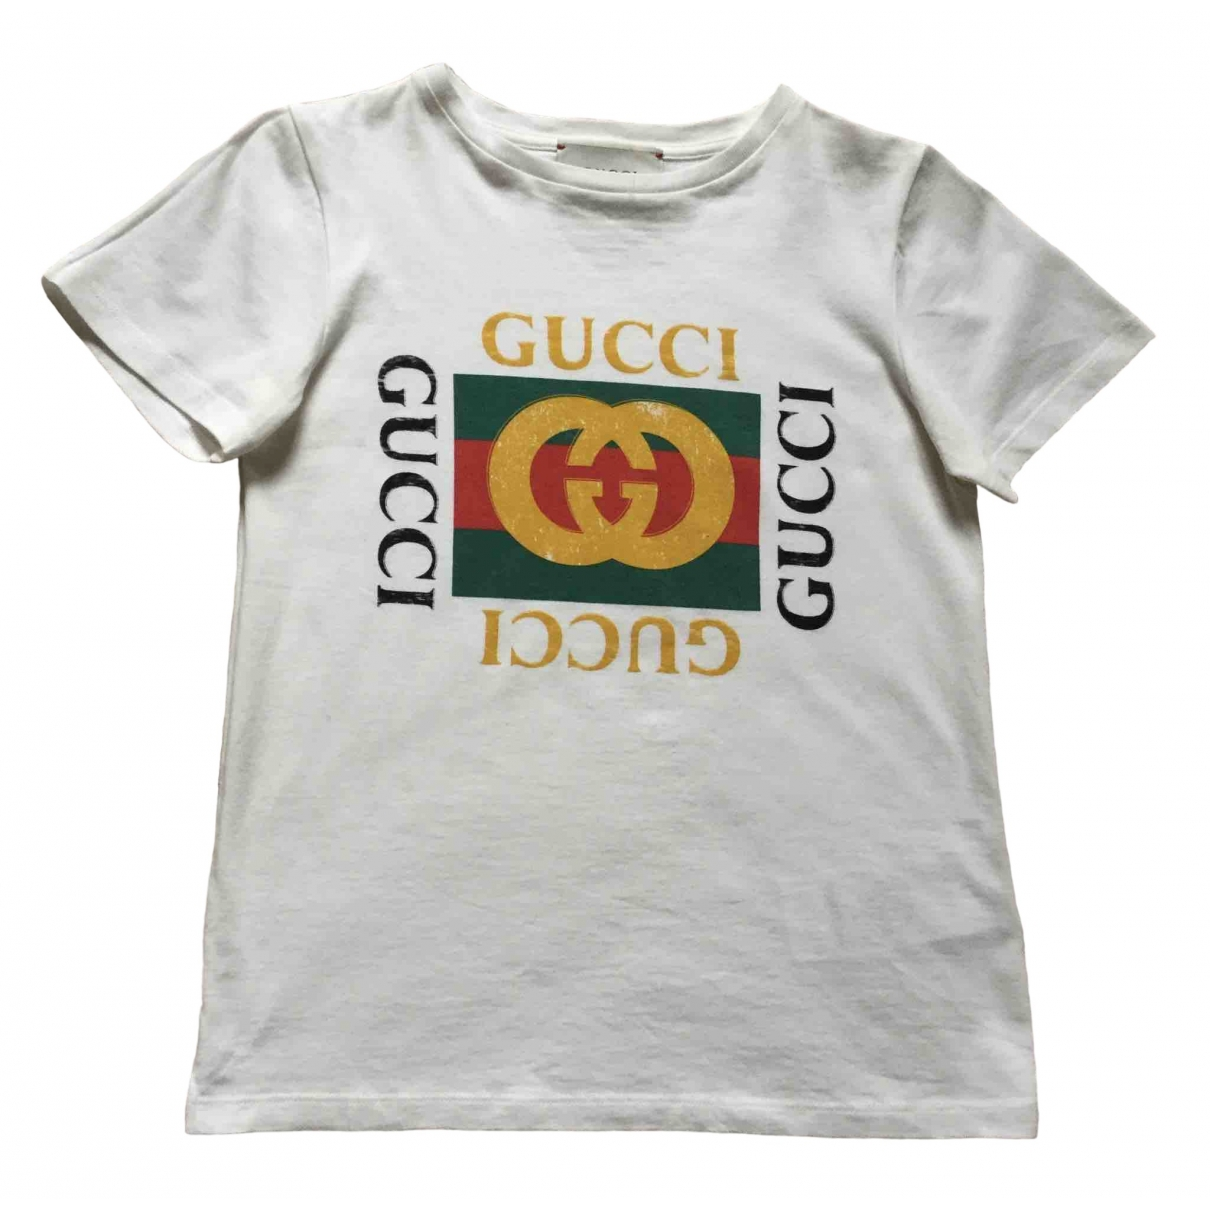 Gucci \N Ecru Cotton  top for Kids 8 years